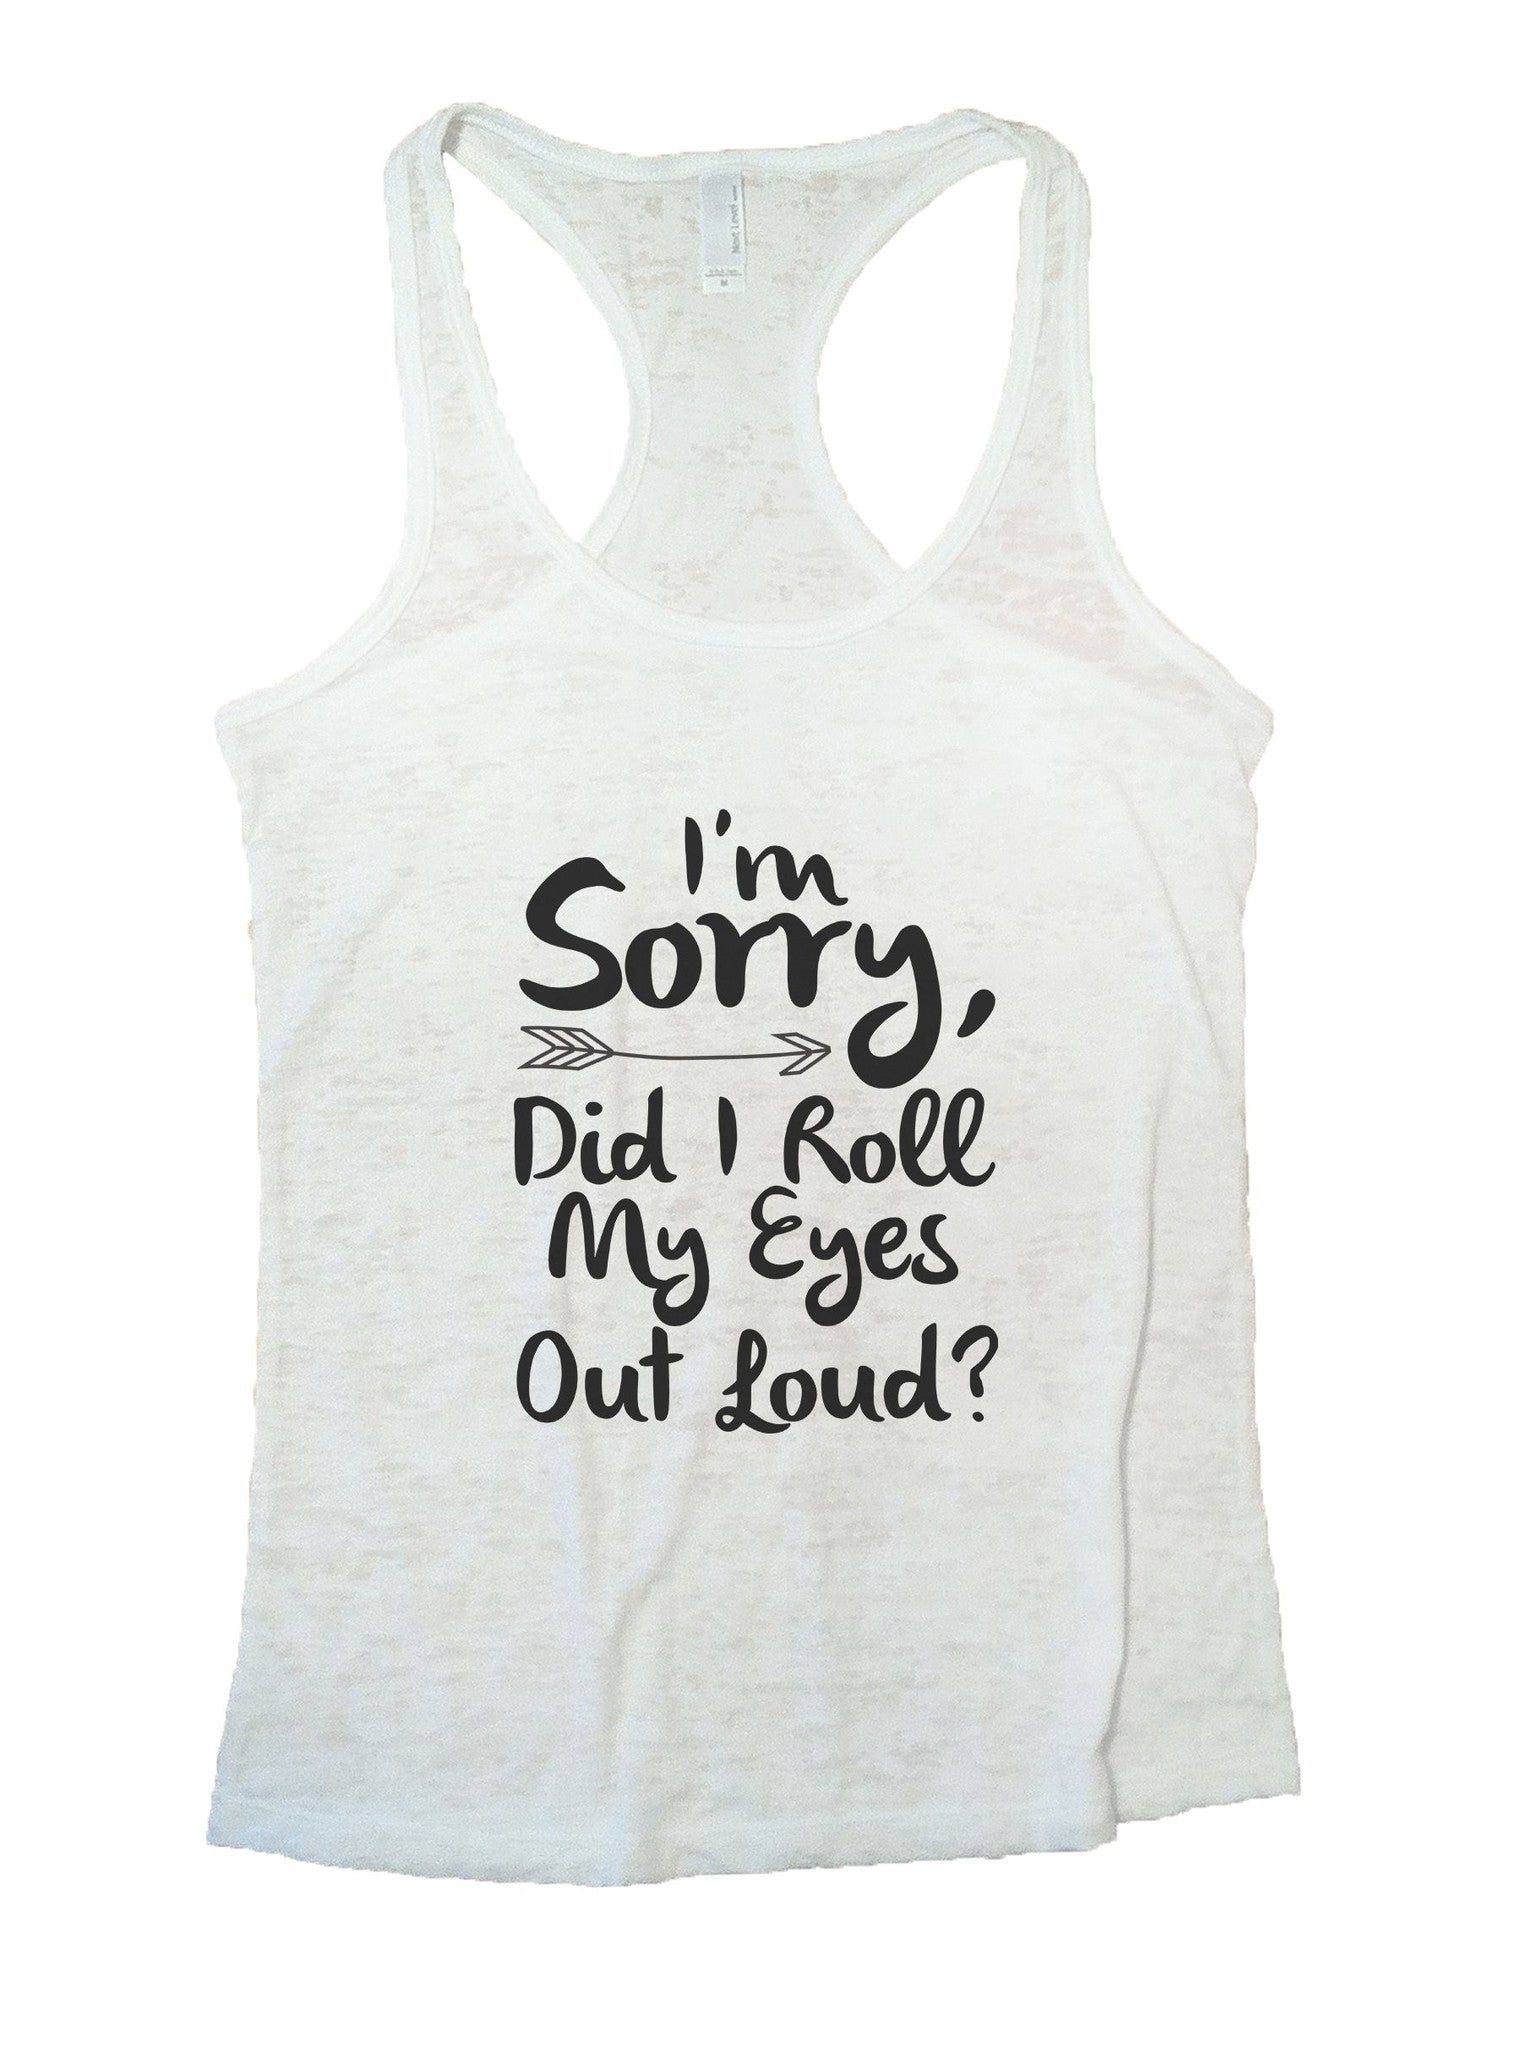 I'm Sorry, Did I Roll My Eyes Out Loud? Burnout Tank Top By BurnoutTankTops.com - 832 - Funny Shirts Tank Tops Burnouts and Triblends  - 6